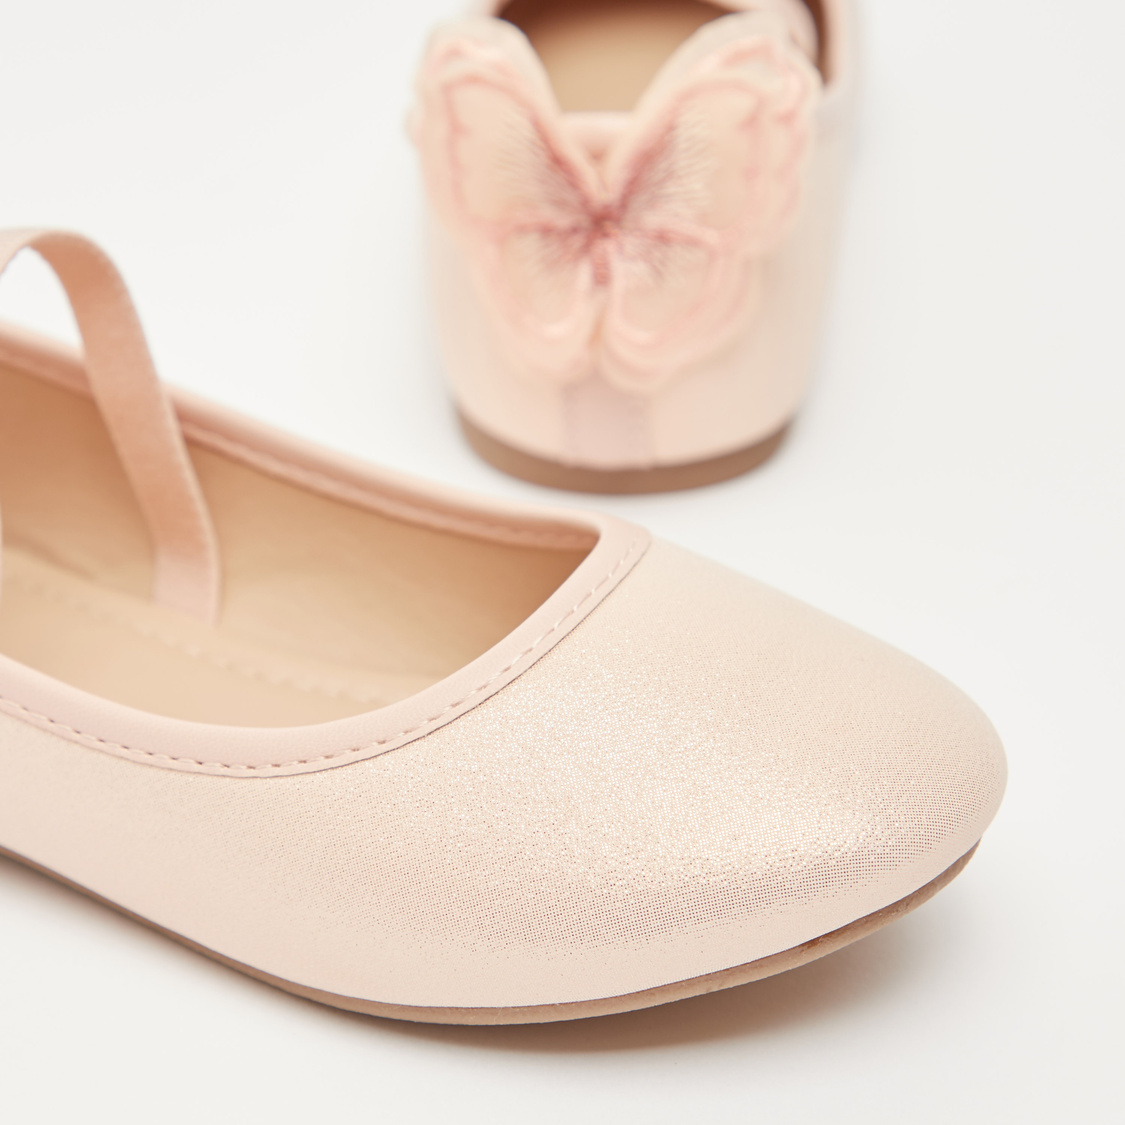 Glitter Accent Shoes with Butterfly Applique Detail